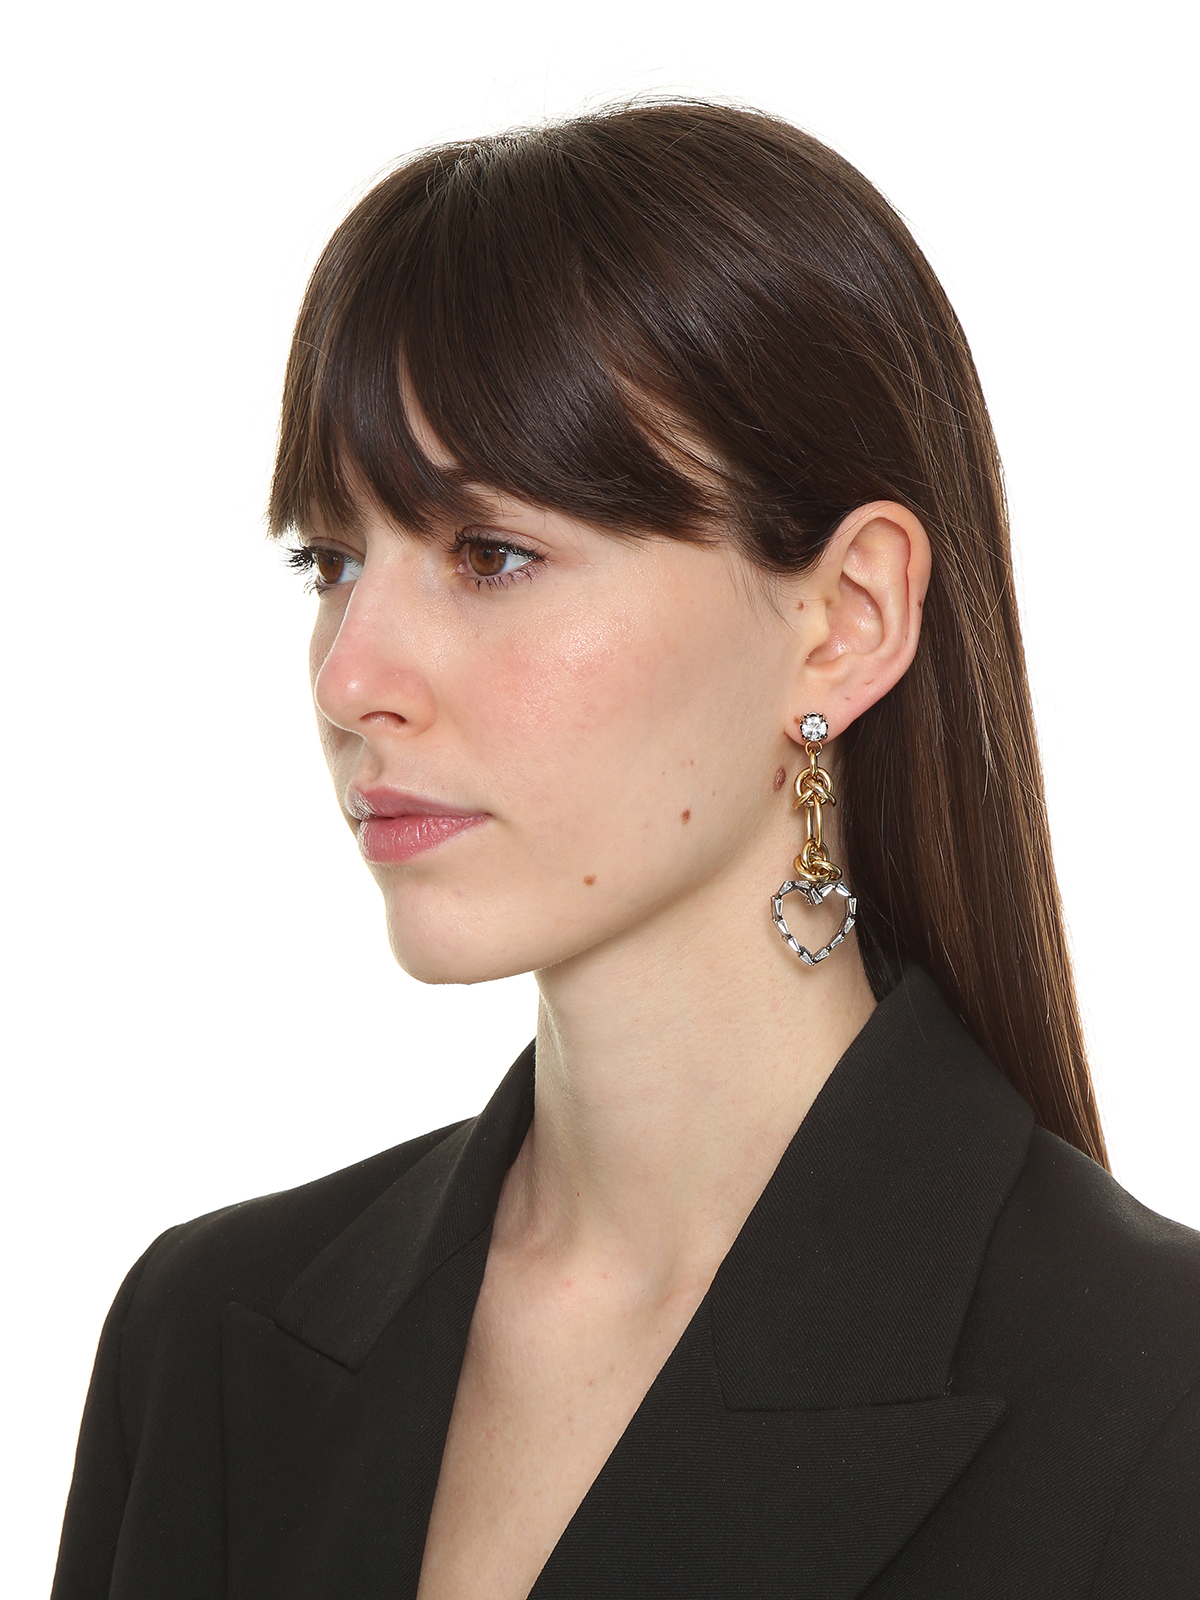 Pendent earrings embellished with crystal hearts and rings